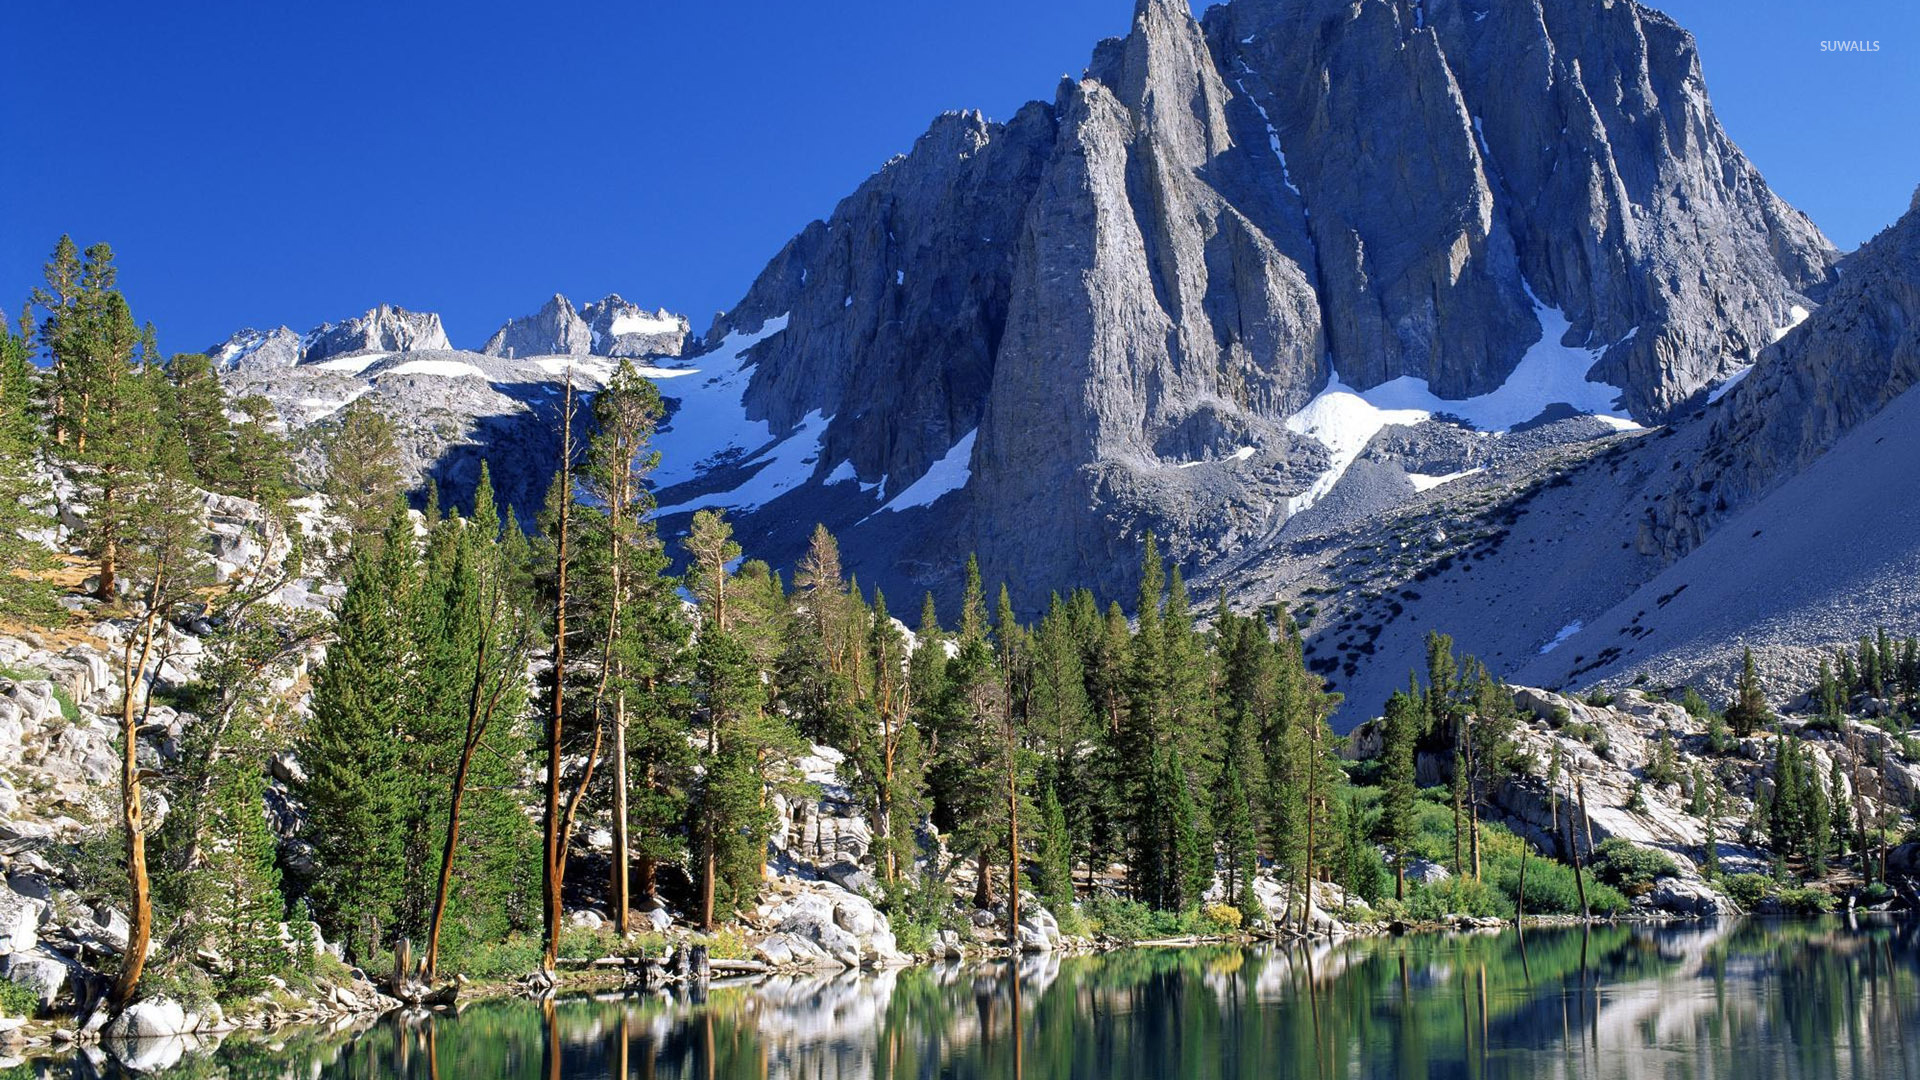 Rocky mountains wallpaper - Nature